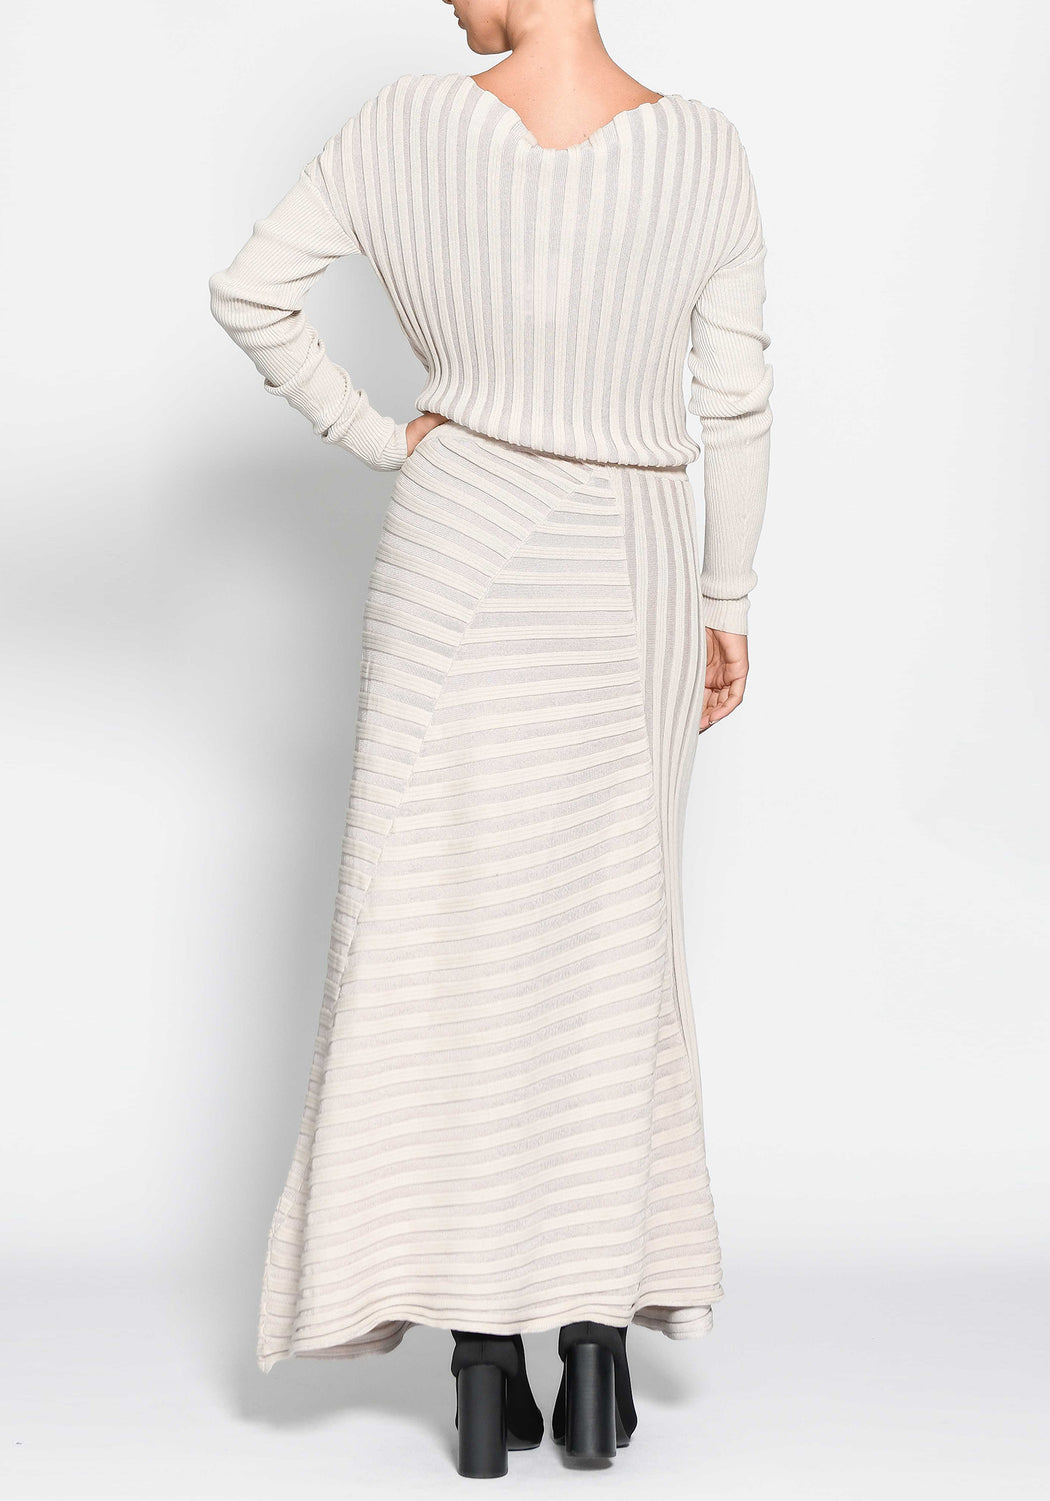 Atrium Ribbed Dress